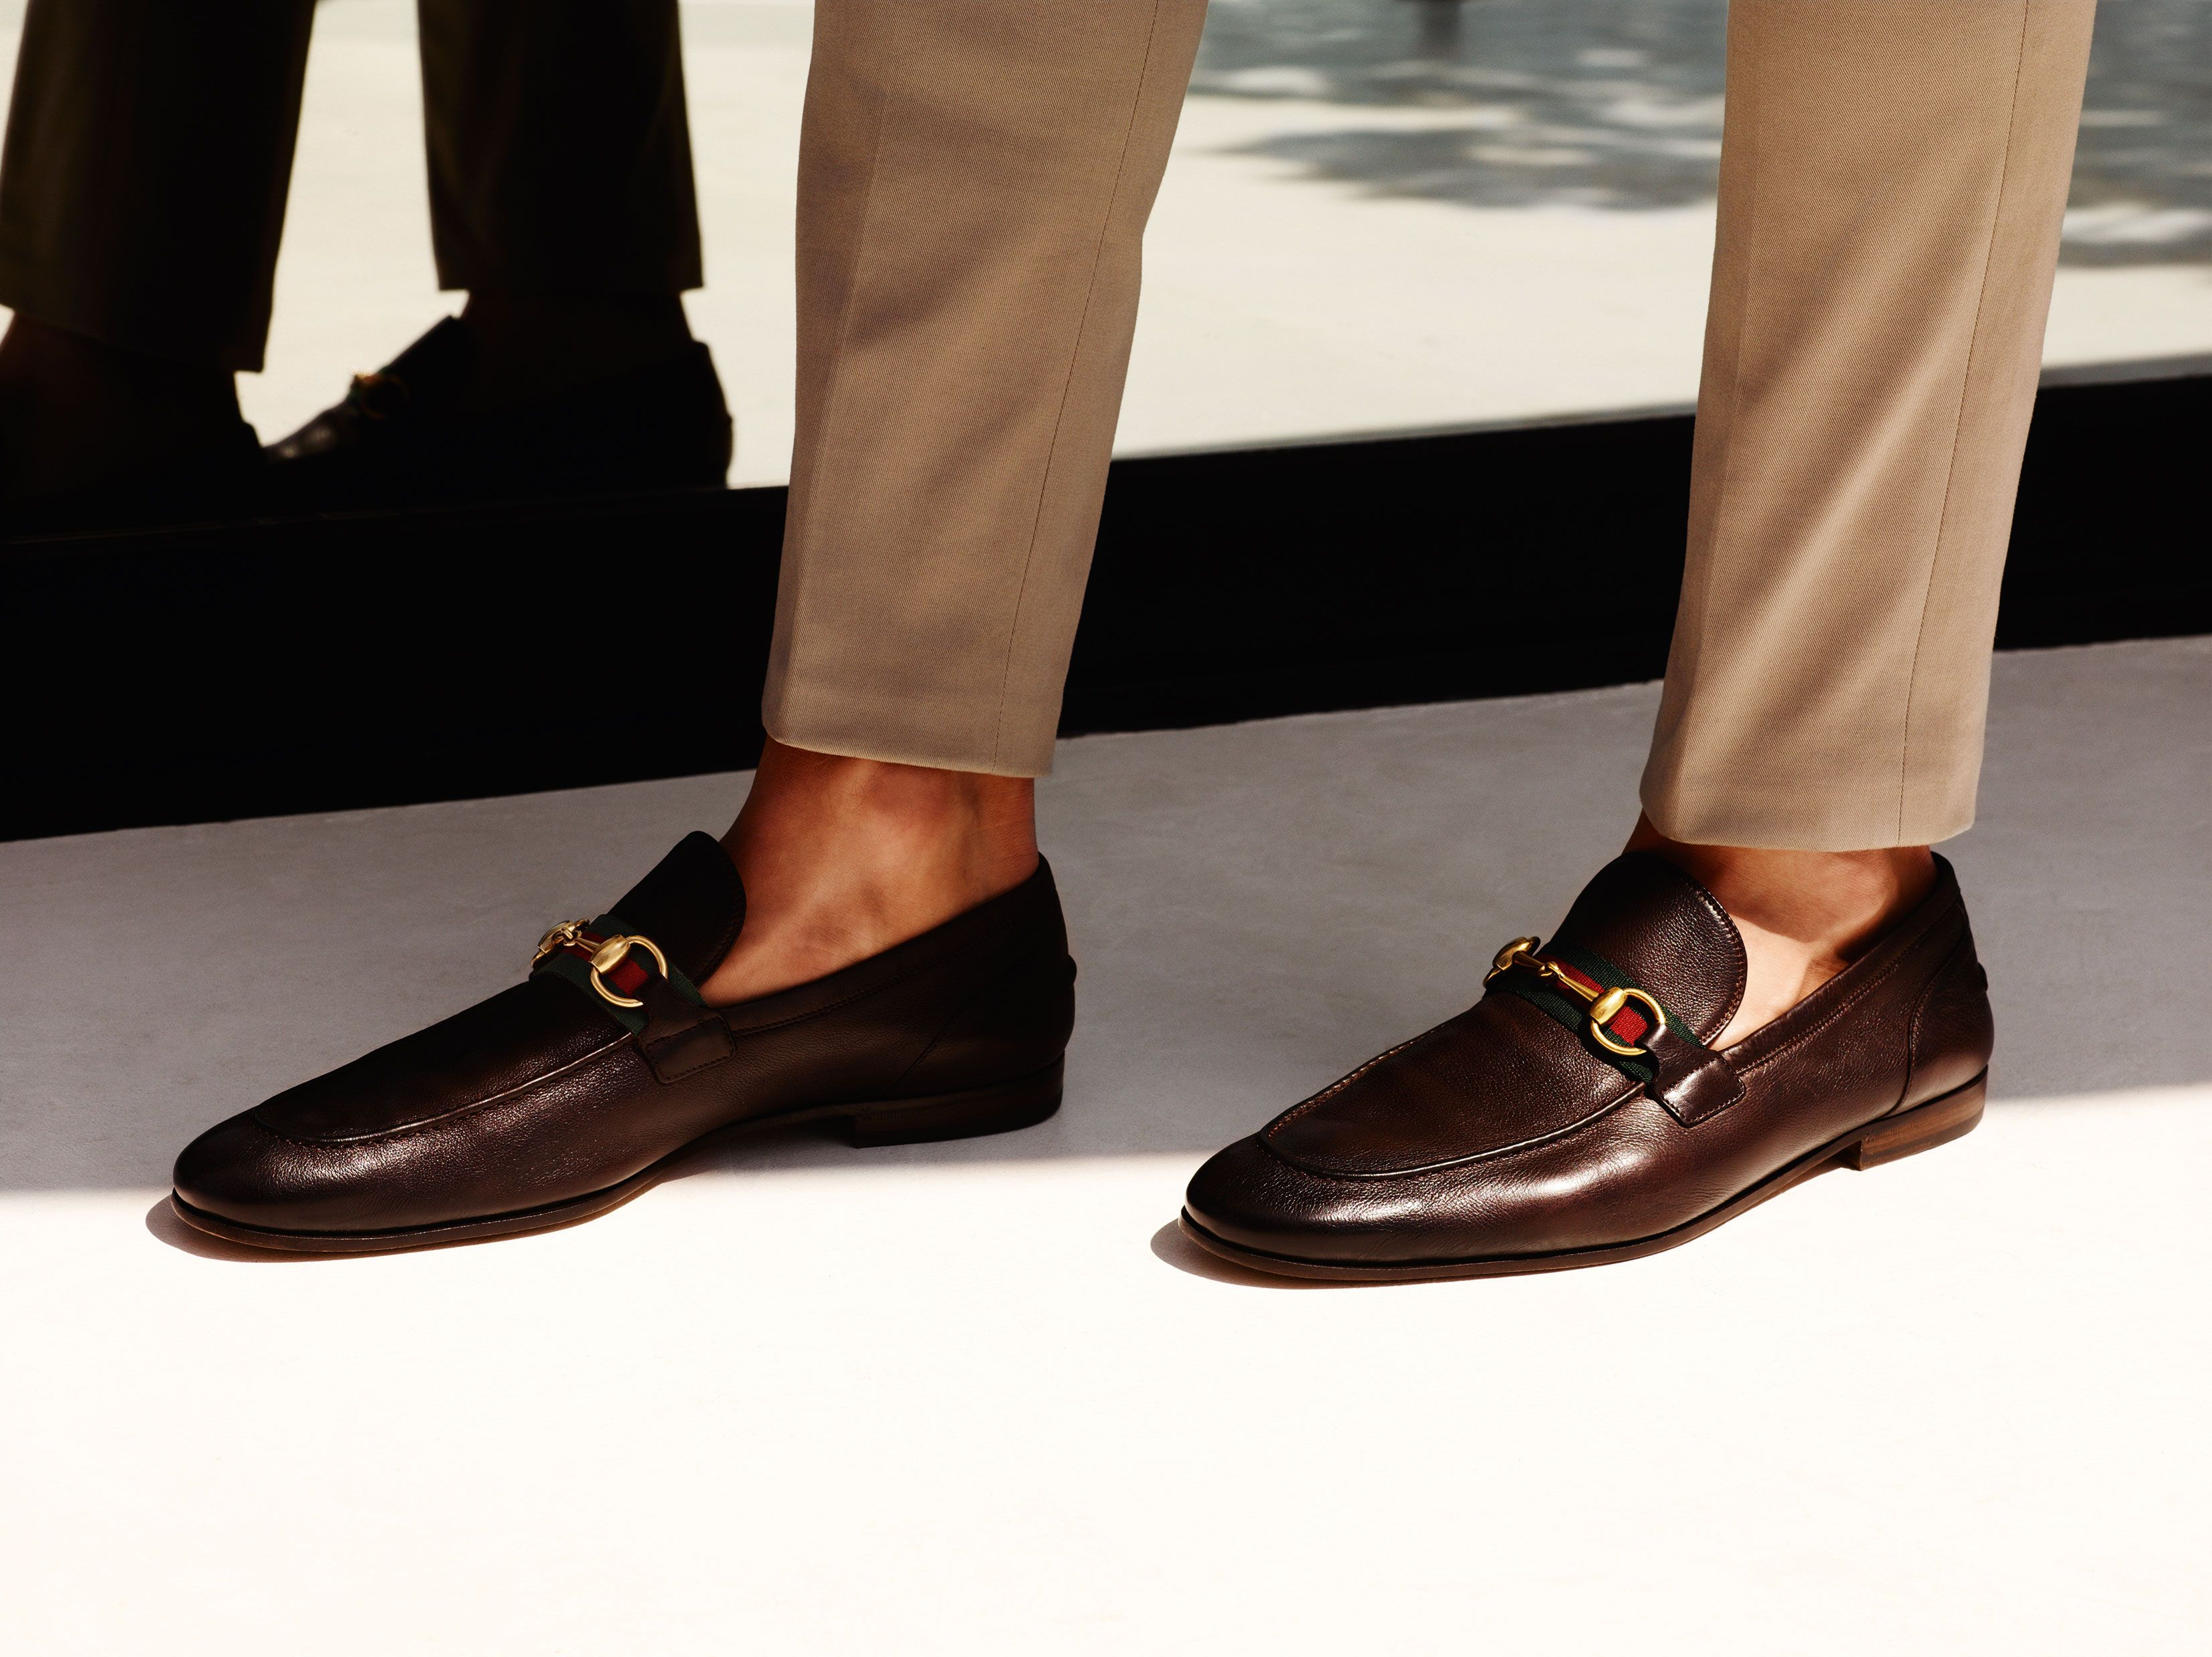 6b6c47f4df7 Gucci Men s Cruise 2014 Collection Leather Soled shoes